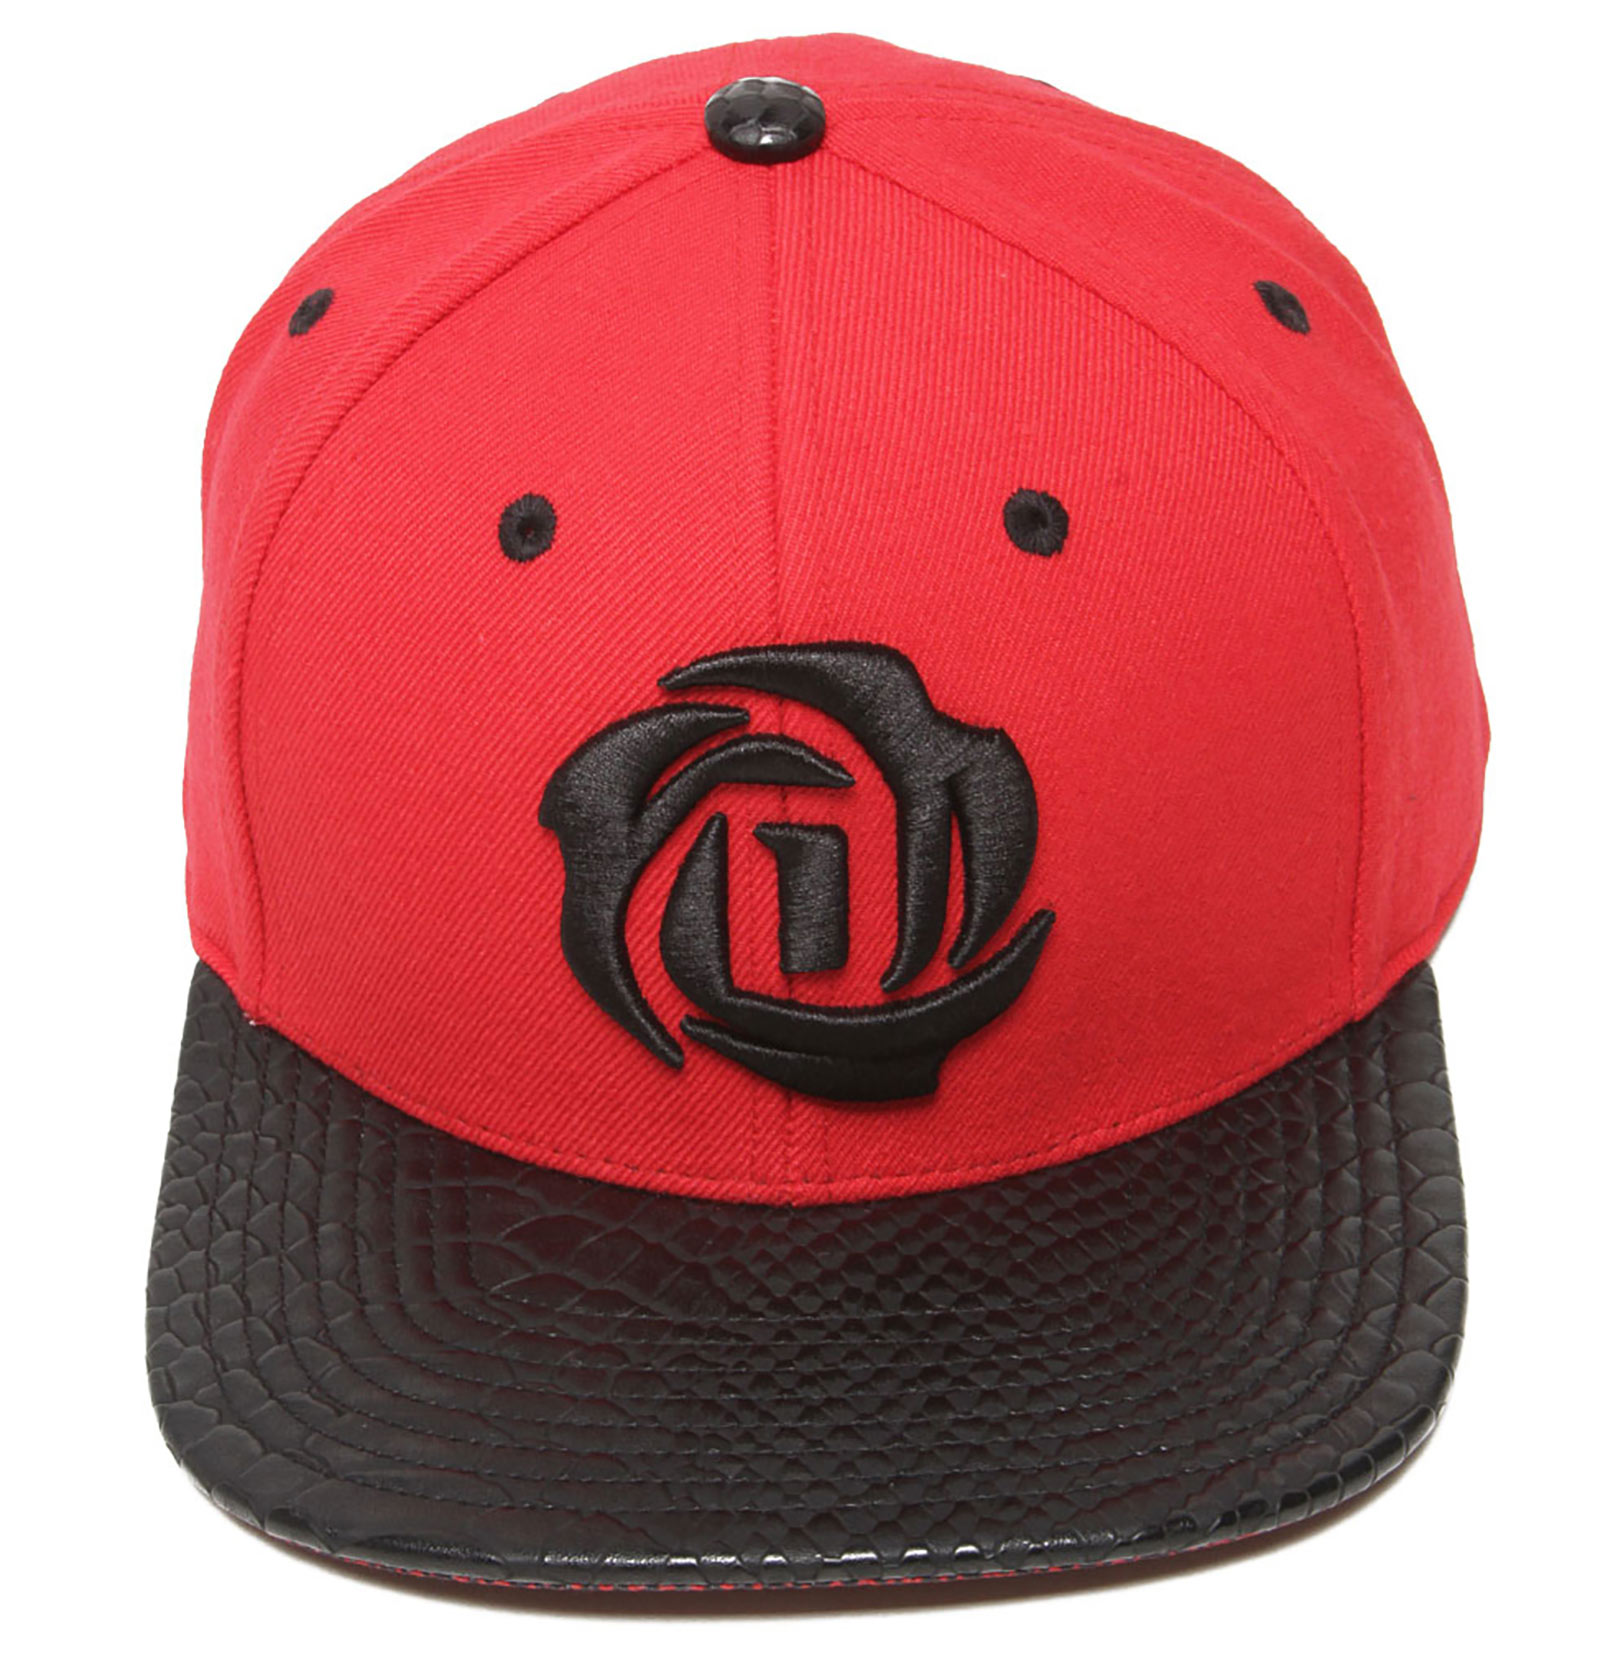 26256d1f99319 ... get 1 of 6free shipping new adidas d rose 5.0 mens baseball cap hat one  size